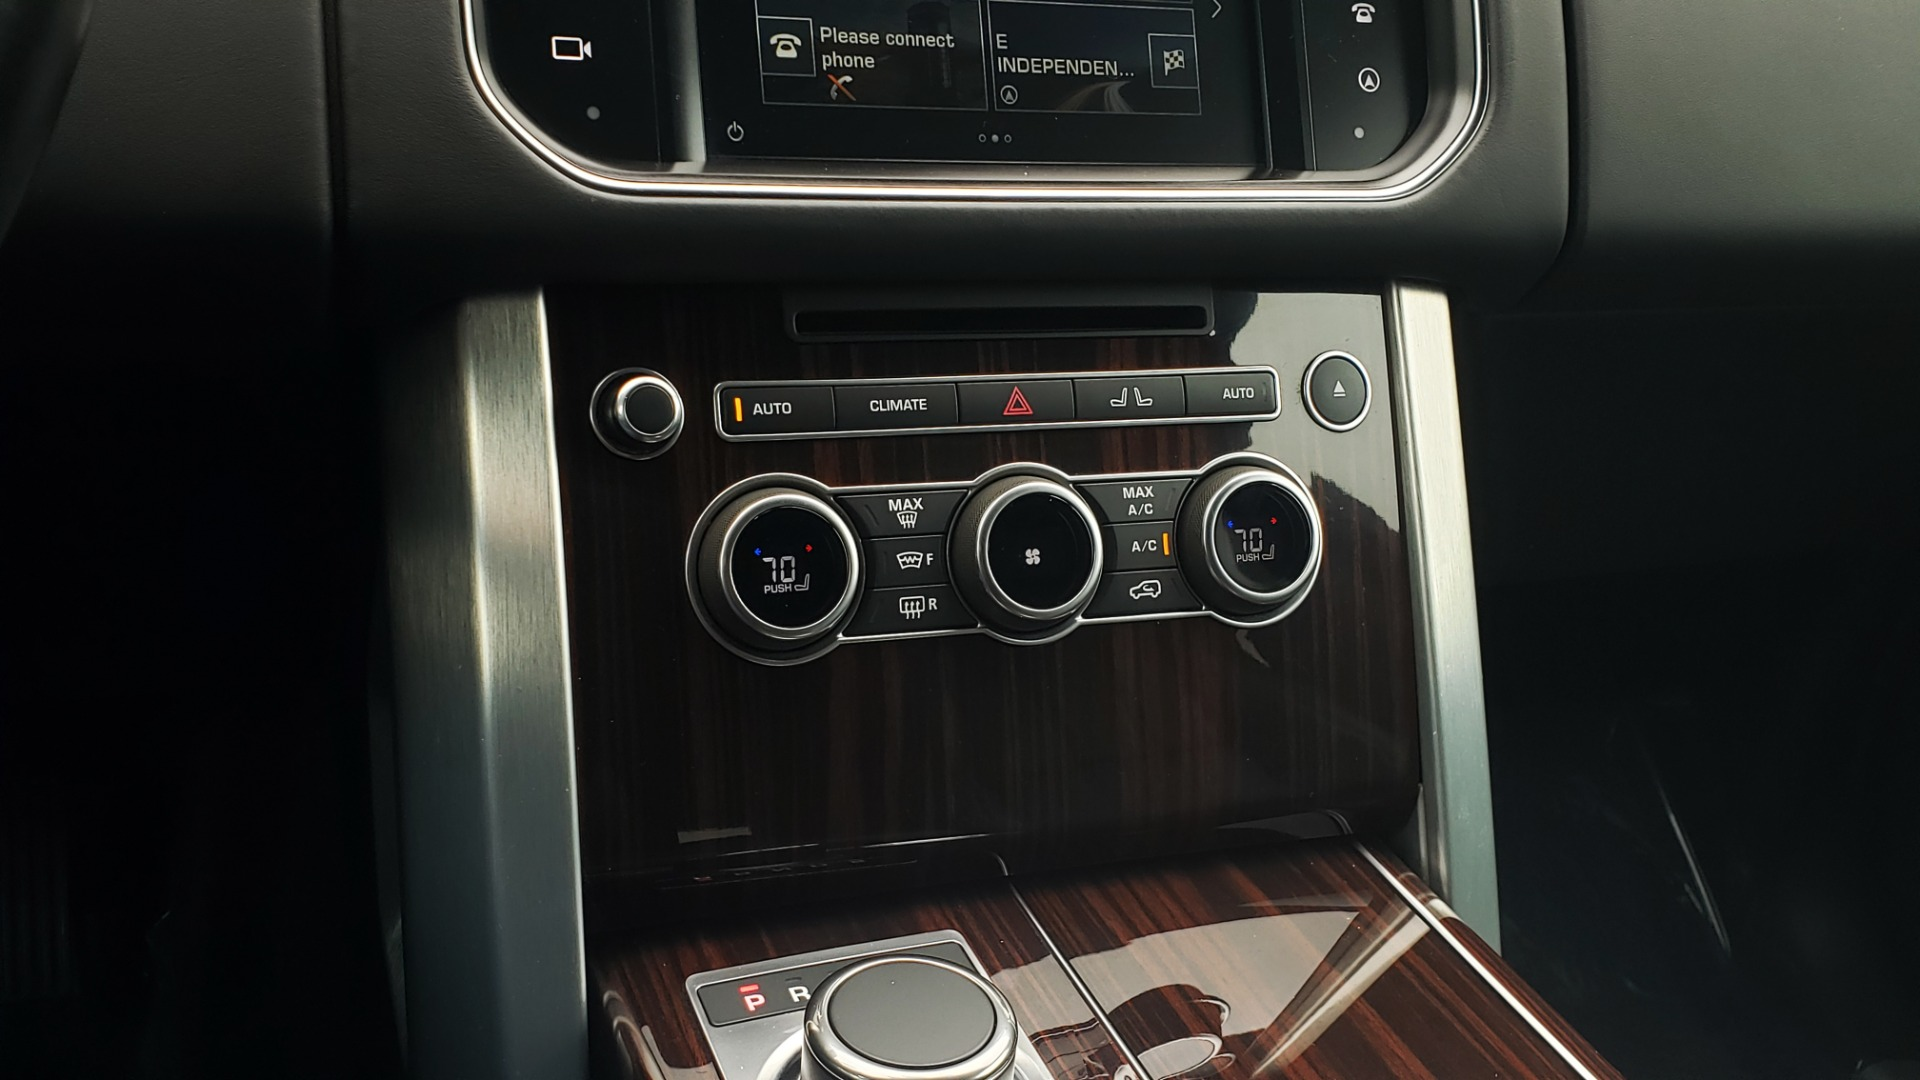 Used 2016 Land Rover Range Rover HSE 3.0L SC V6 / NAV / PANO-ROOF / VENT SEATS / REARVIEW / BLIND SPOT for sale Sold at Formula Imports in Charlotte NC 28227 52